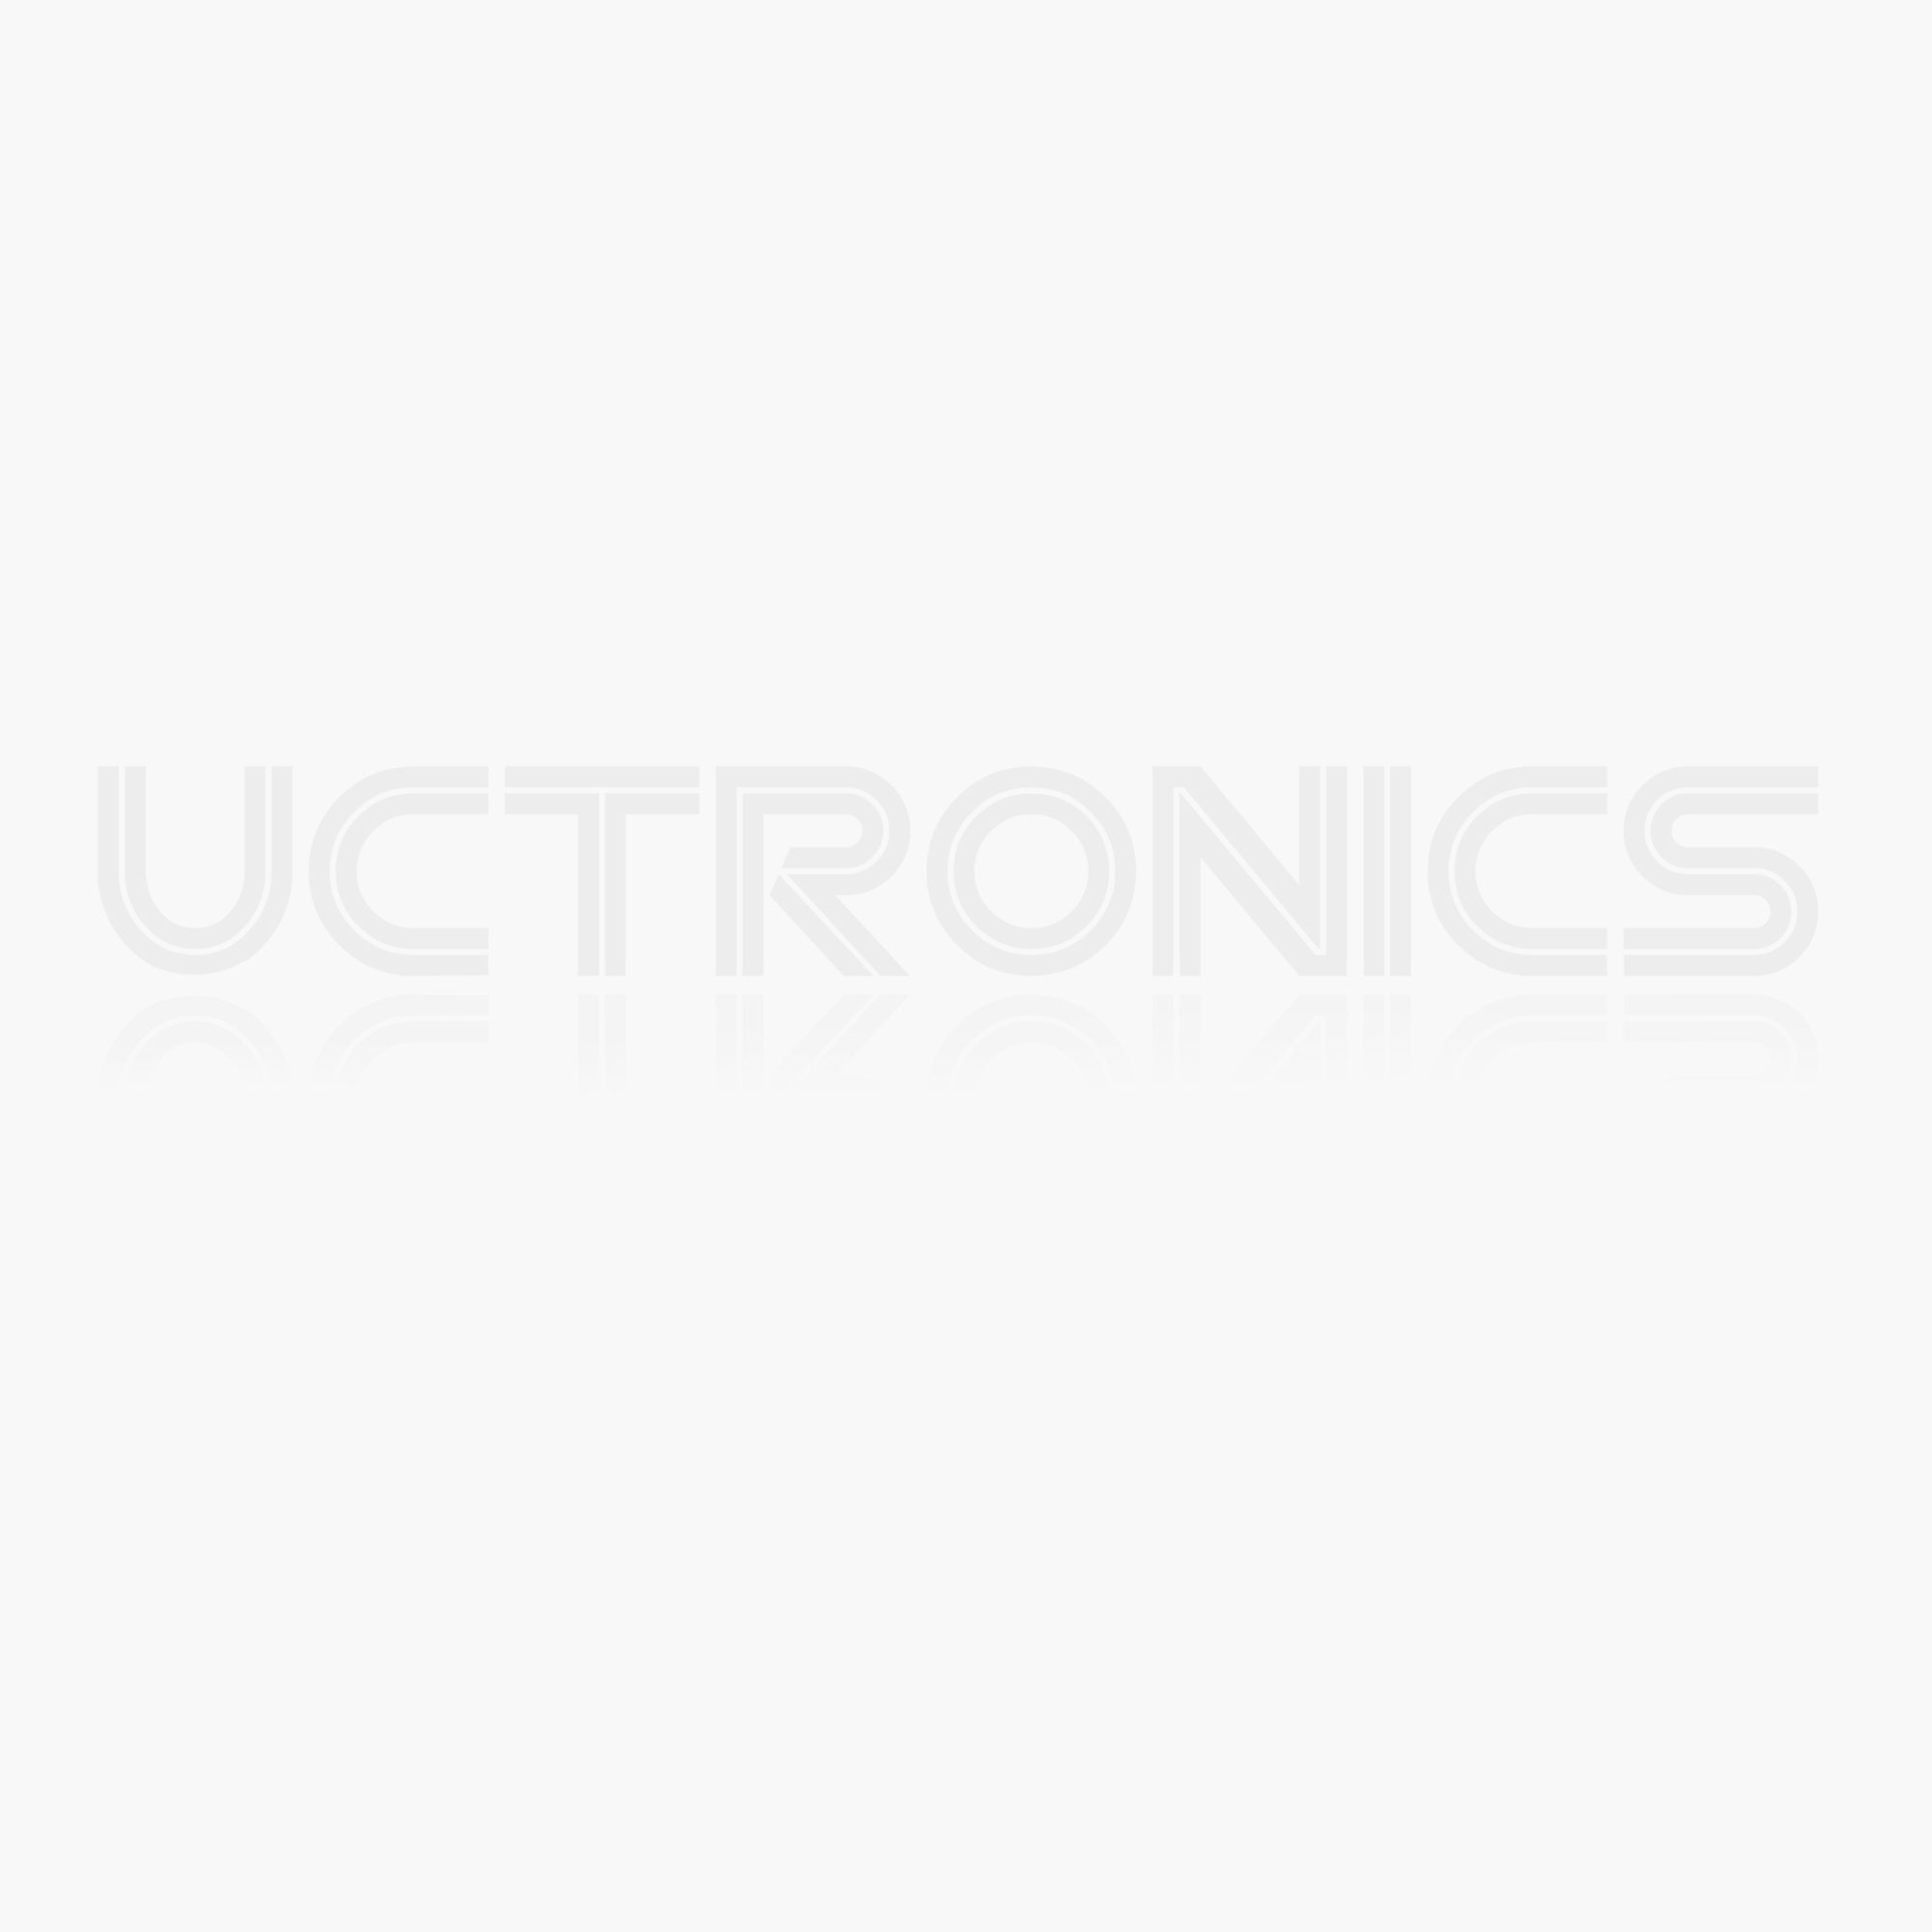 Digital Touch Sensor capacitive touch switch module for Arduino